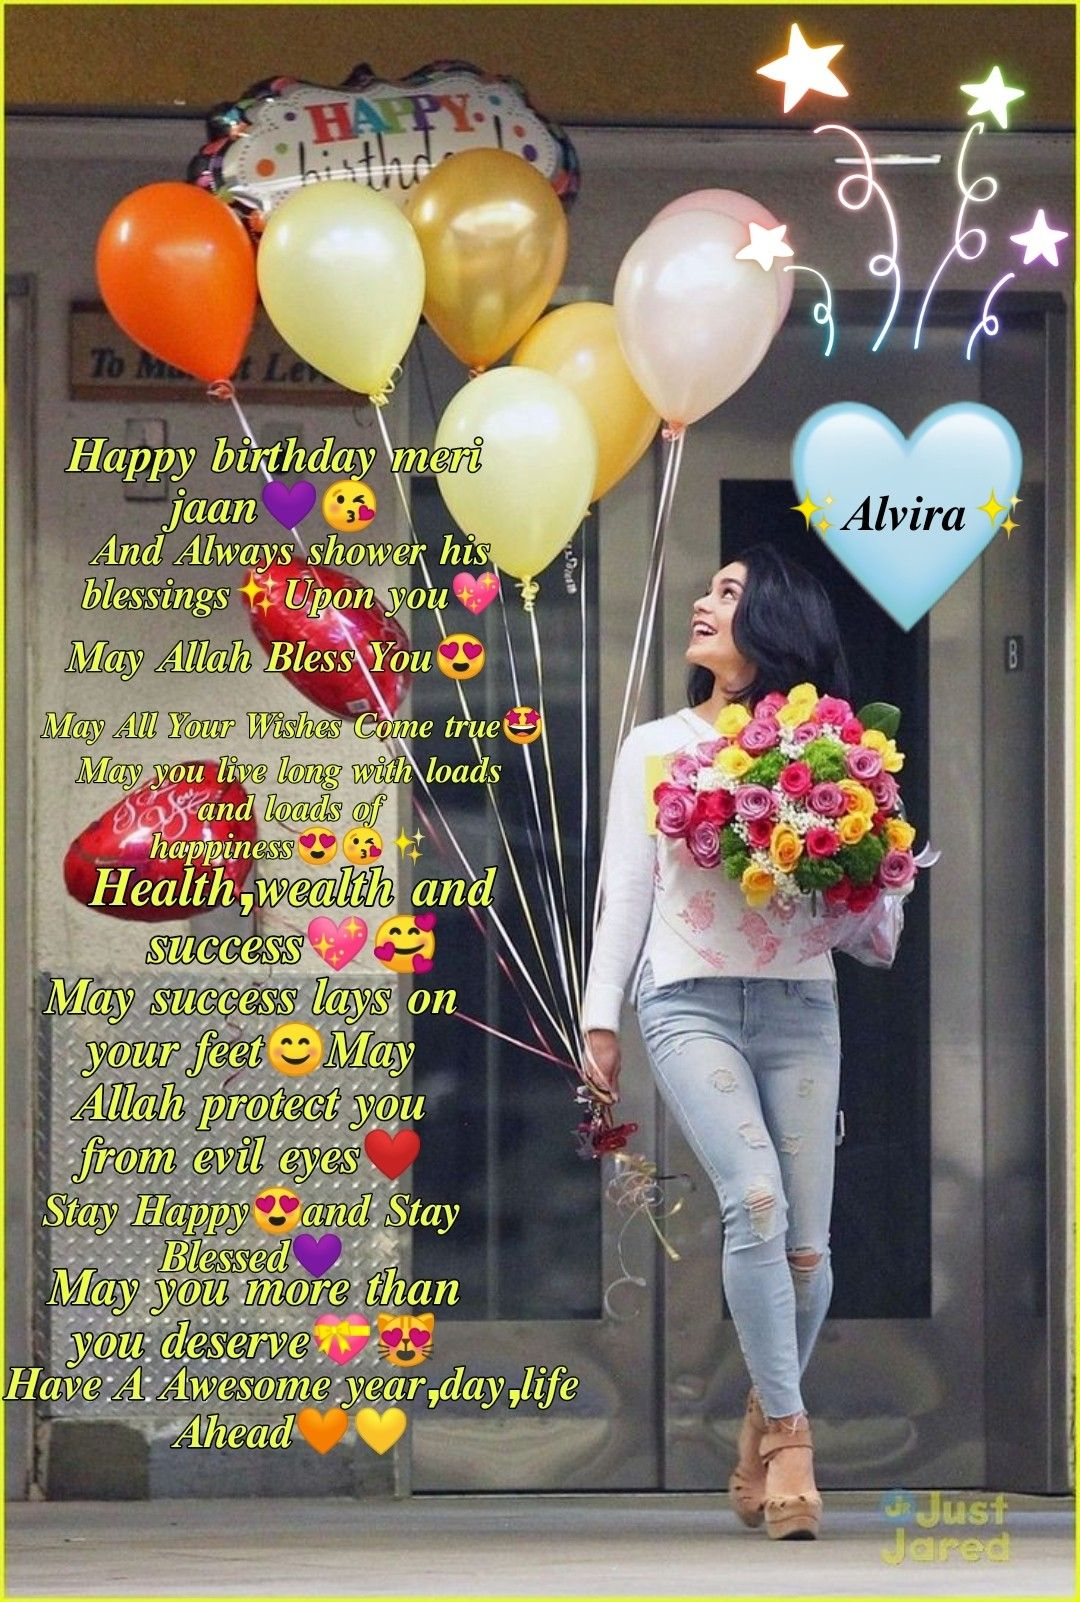 Best Wishes For You Jaanii Wishes For You Happy Birthday Meri Jaan Birthday Wishes